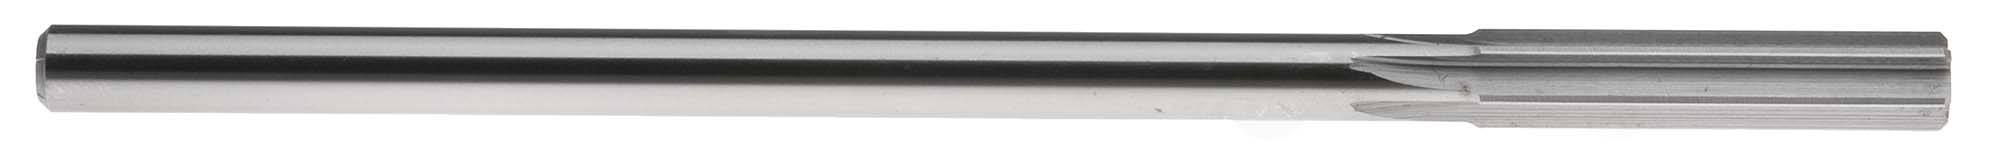 "5/64"" Straight Shank Chucking Reamer, Straight Flute, High Speed Steel"